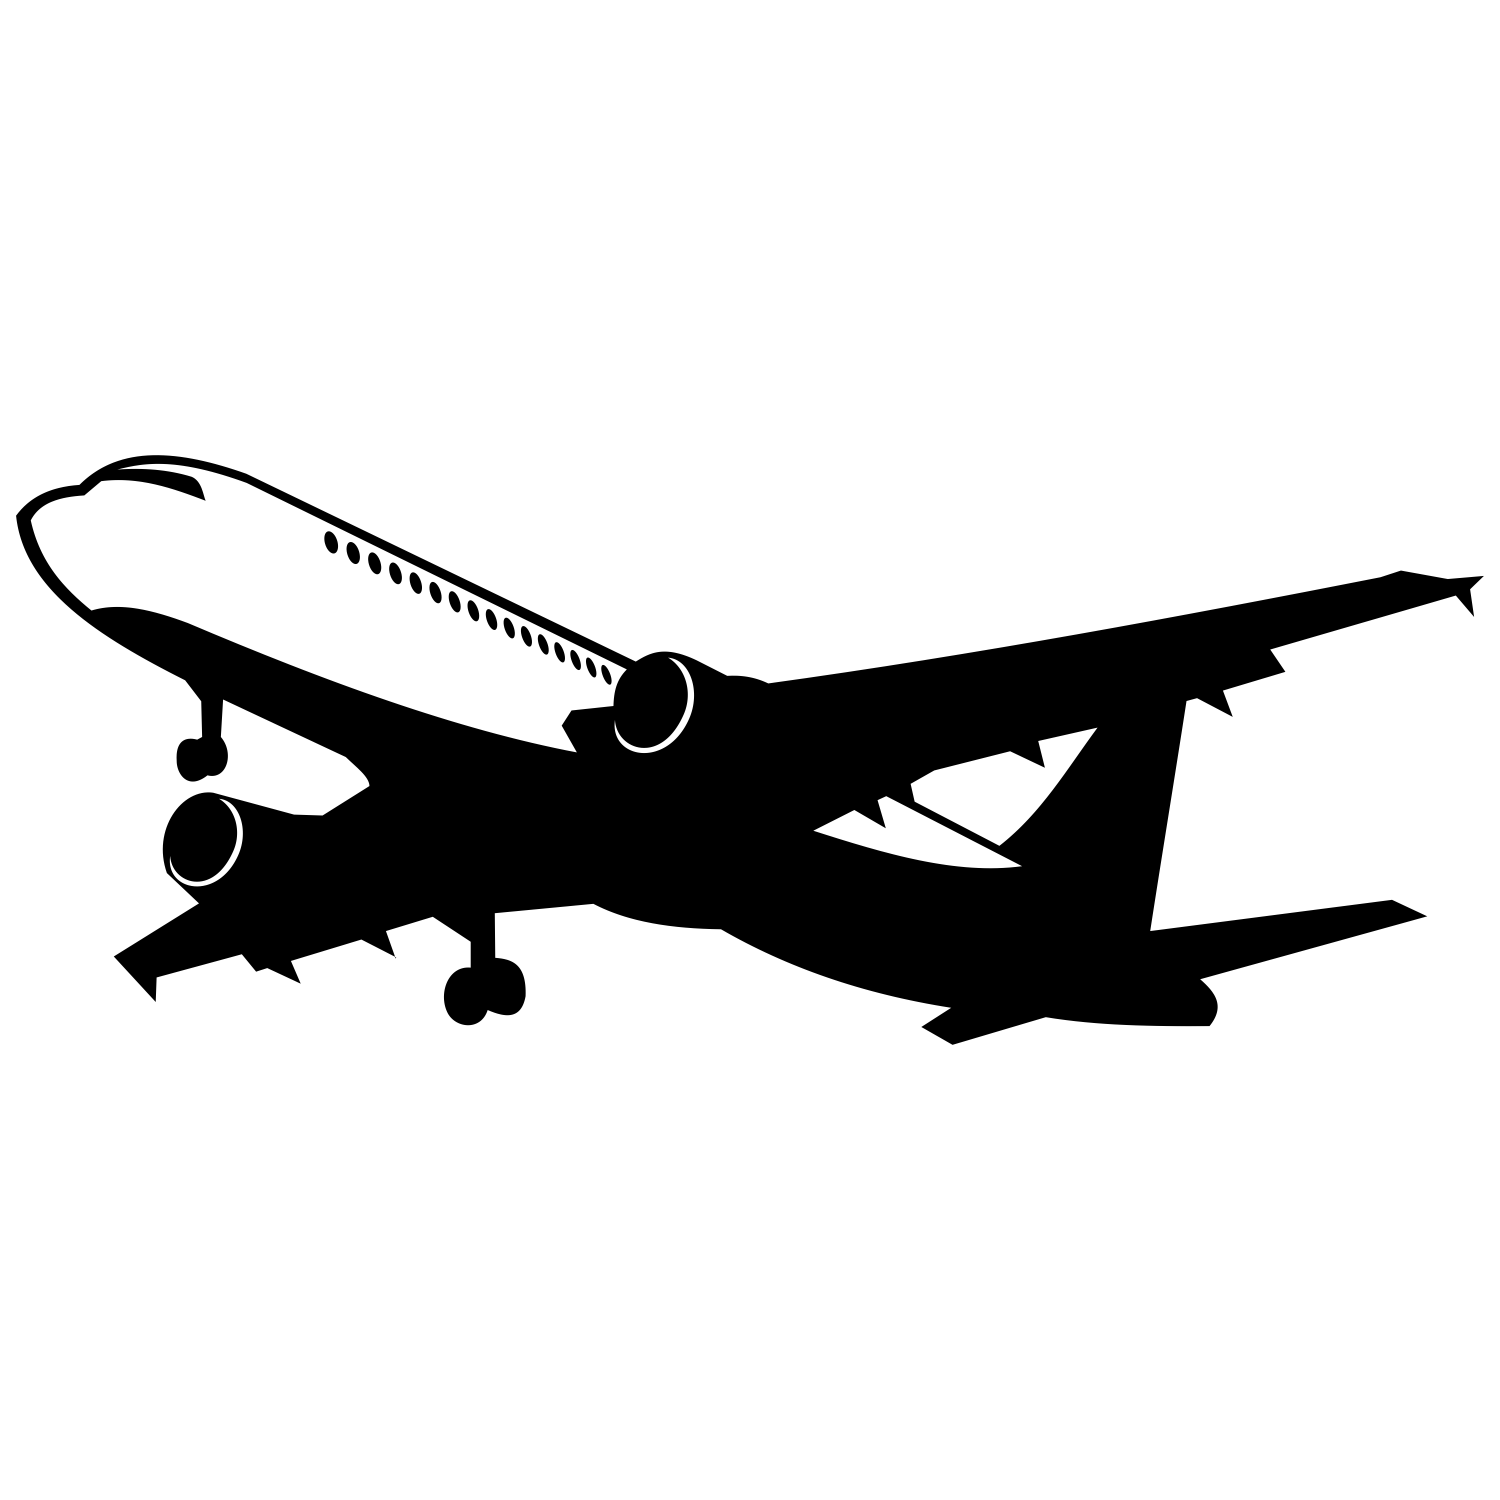 plane clipart black and white with 12 0 1161 on Cross The Odd Man Out furthermore Newpage6 as well Playground Clip Art further ClipArt additionally Index.